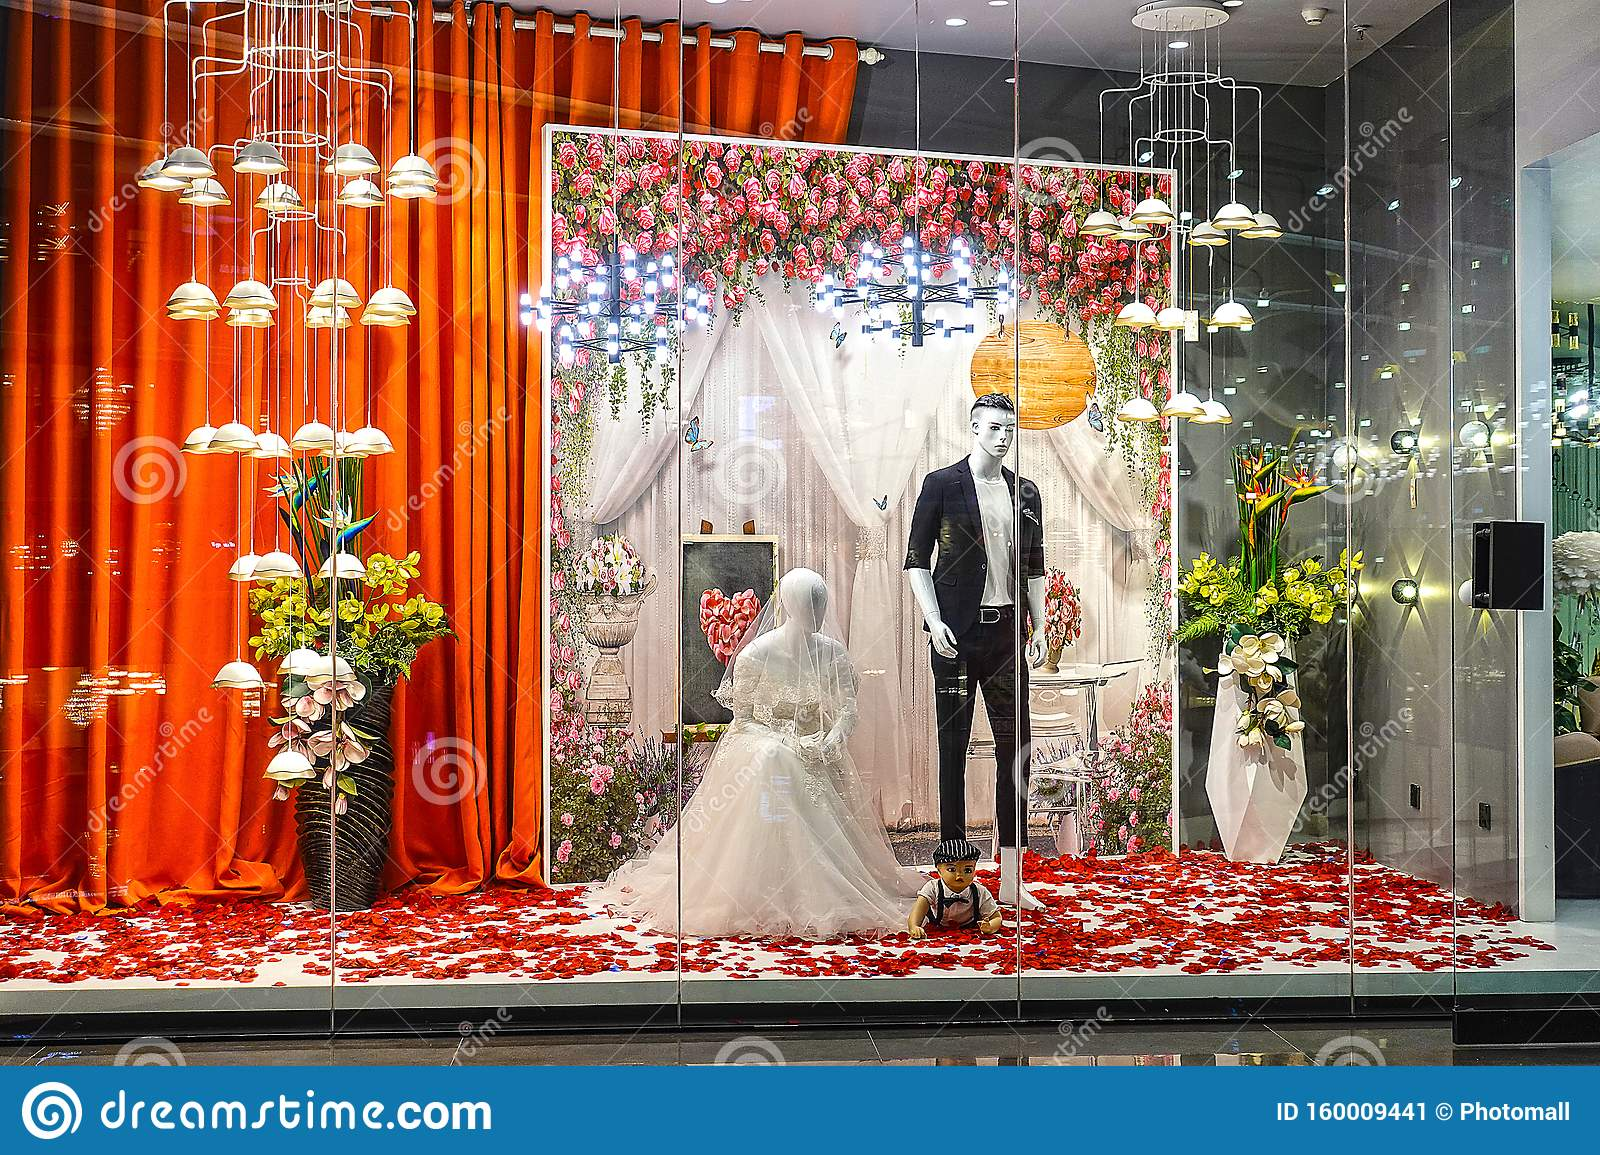 1 515 Shop Wedding Window Photos Free Royalty Free Stock Photos From Dreamstime